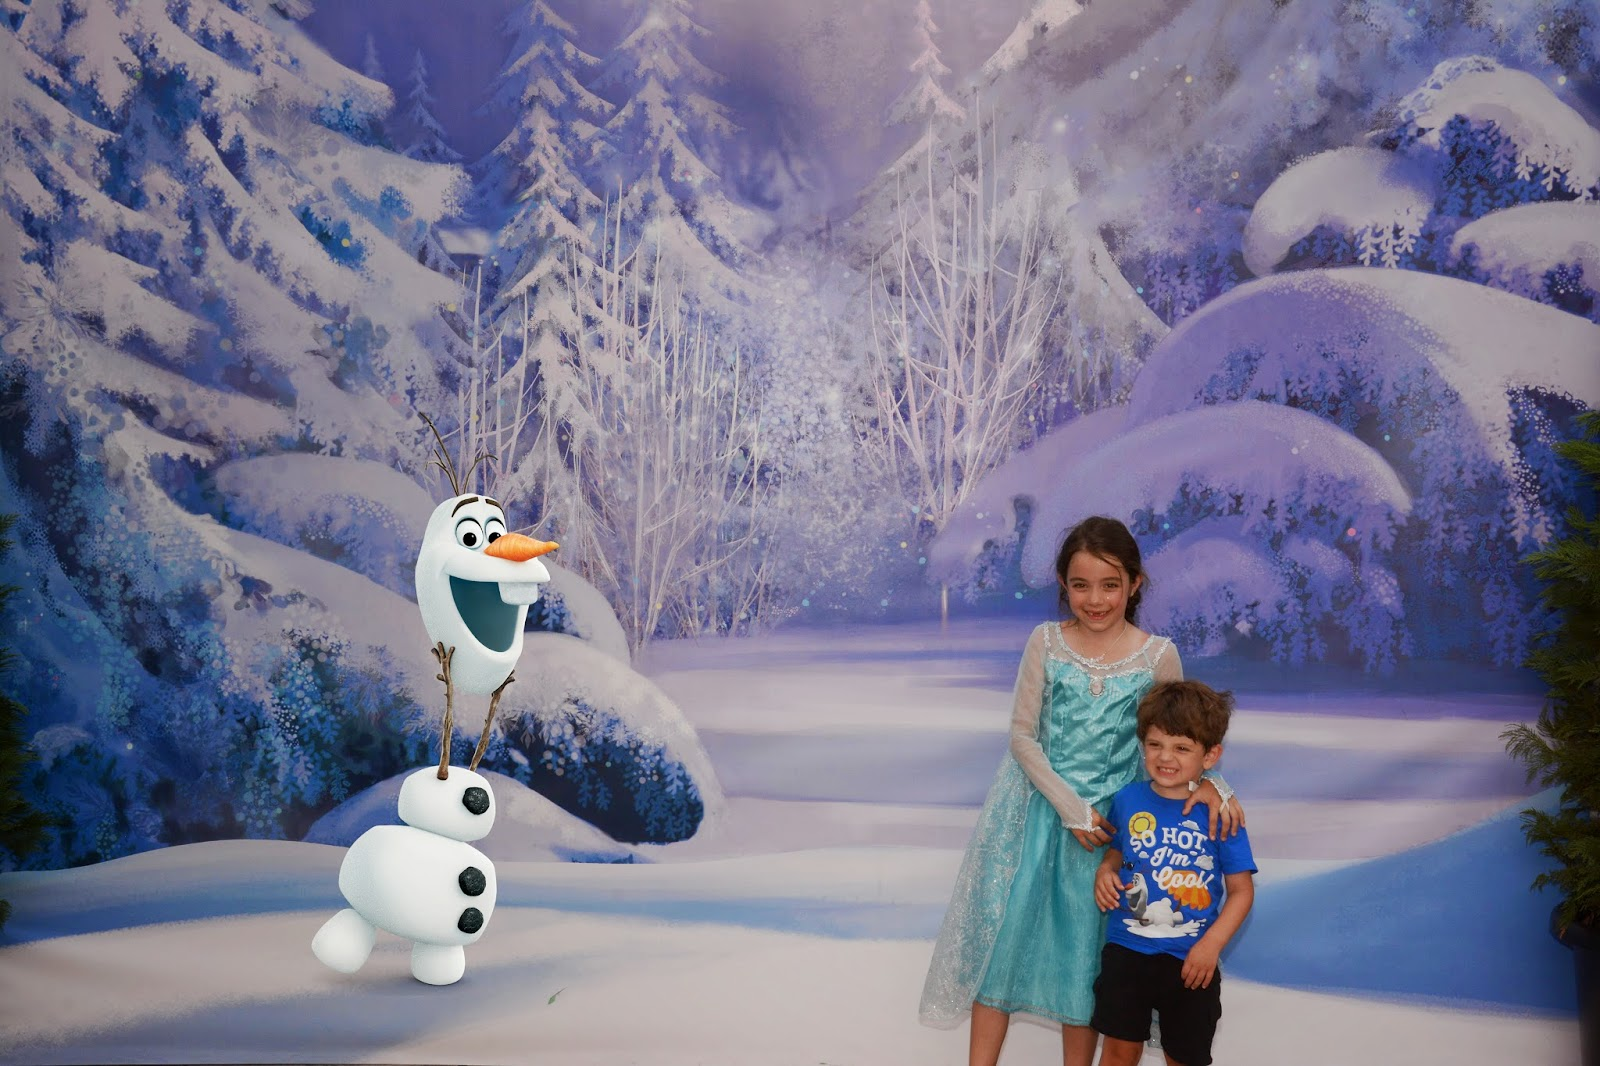 Frozen Summer Fun Live! PhotoPass Magic Shot with Olaf